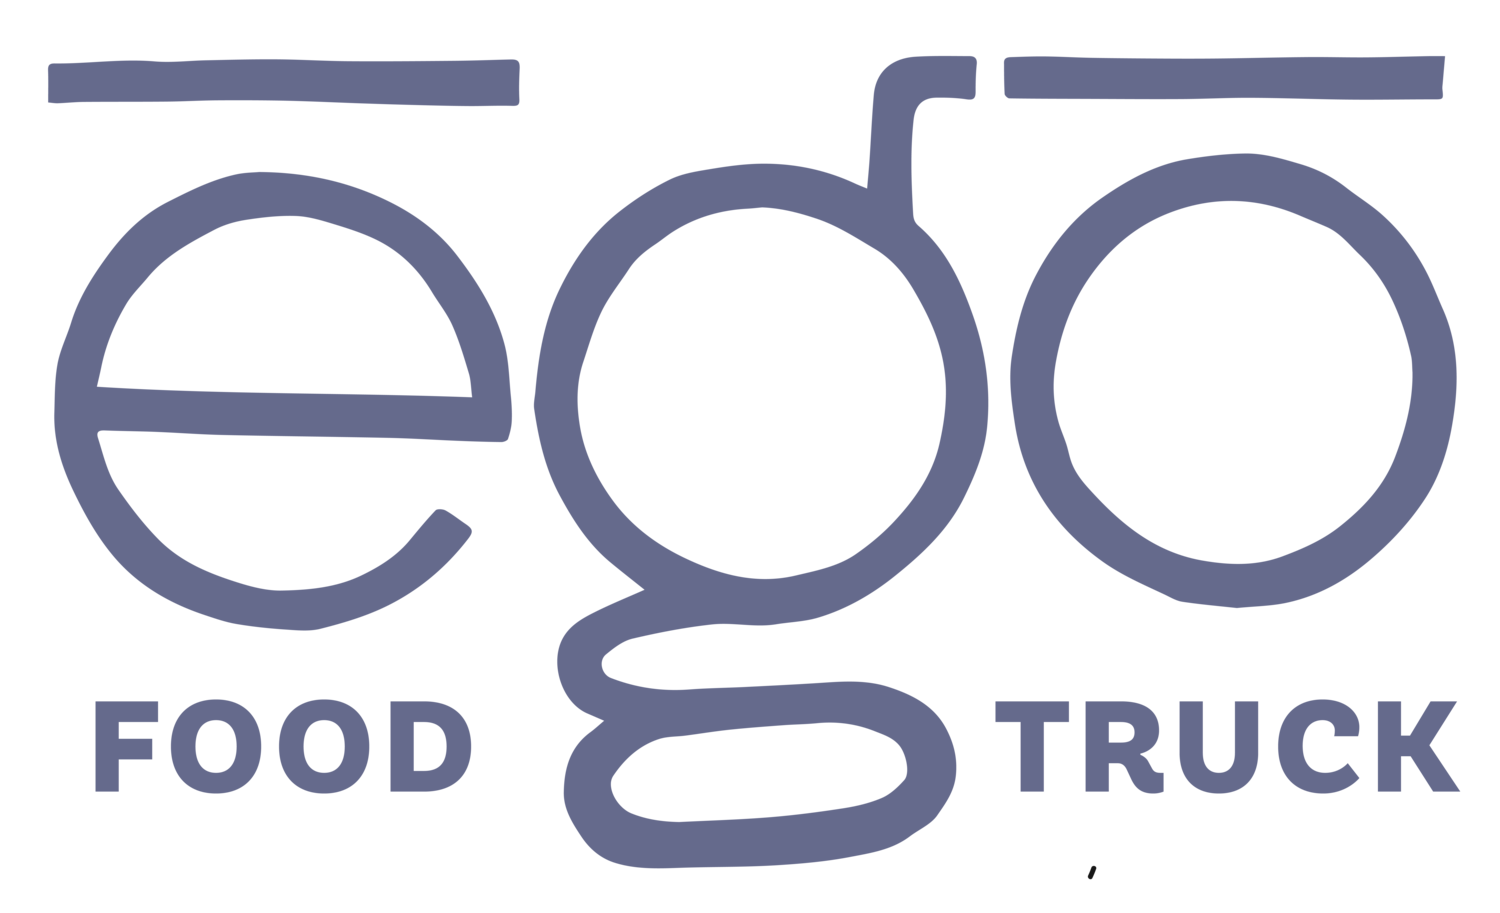 Ego Food Co.